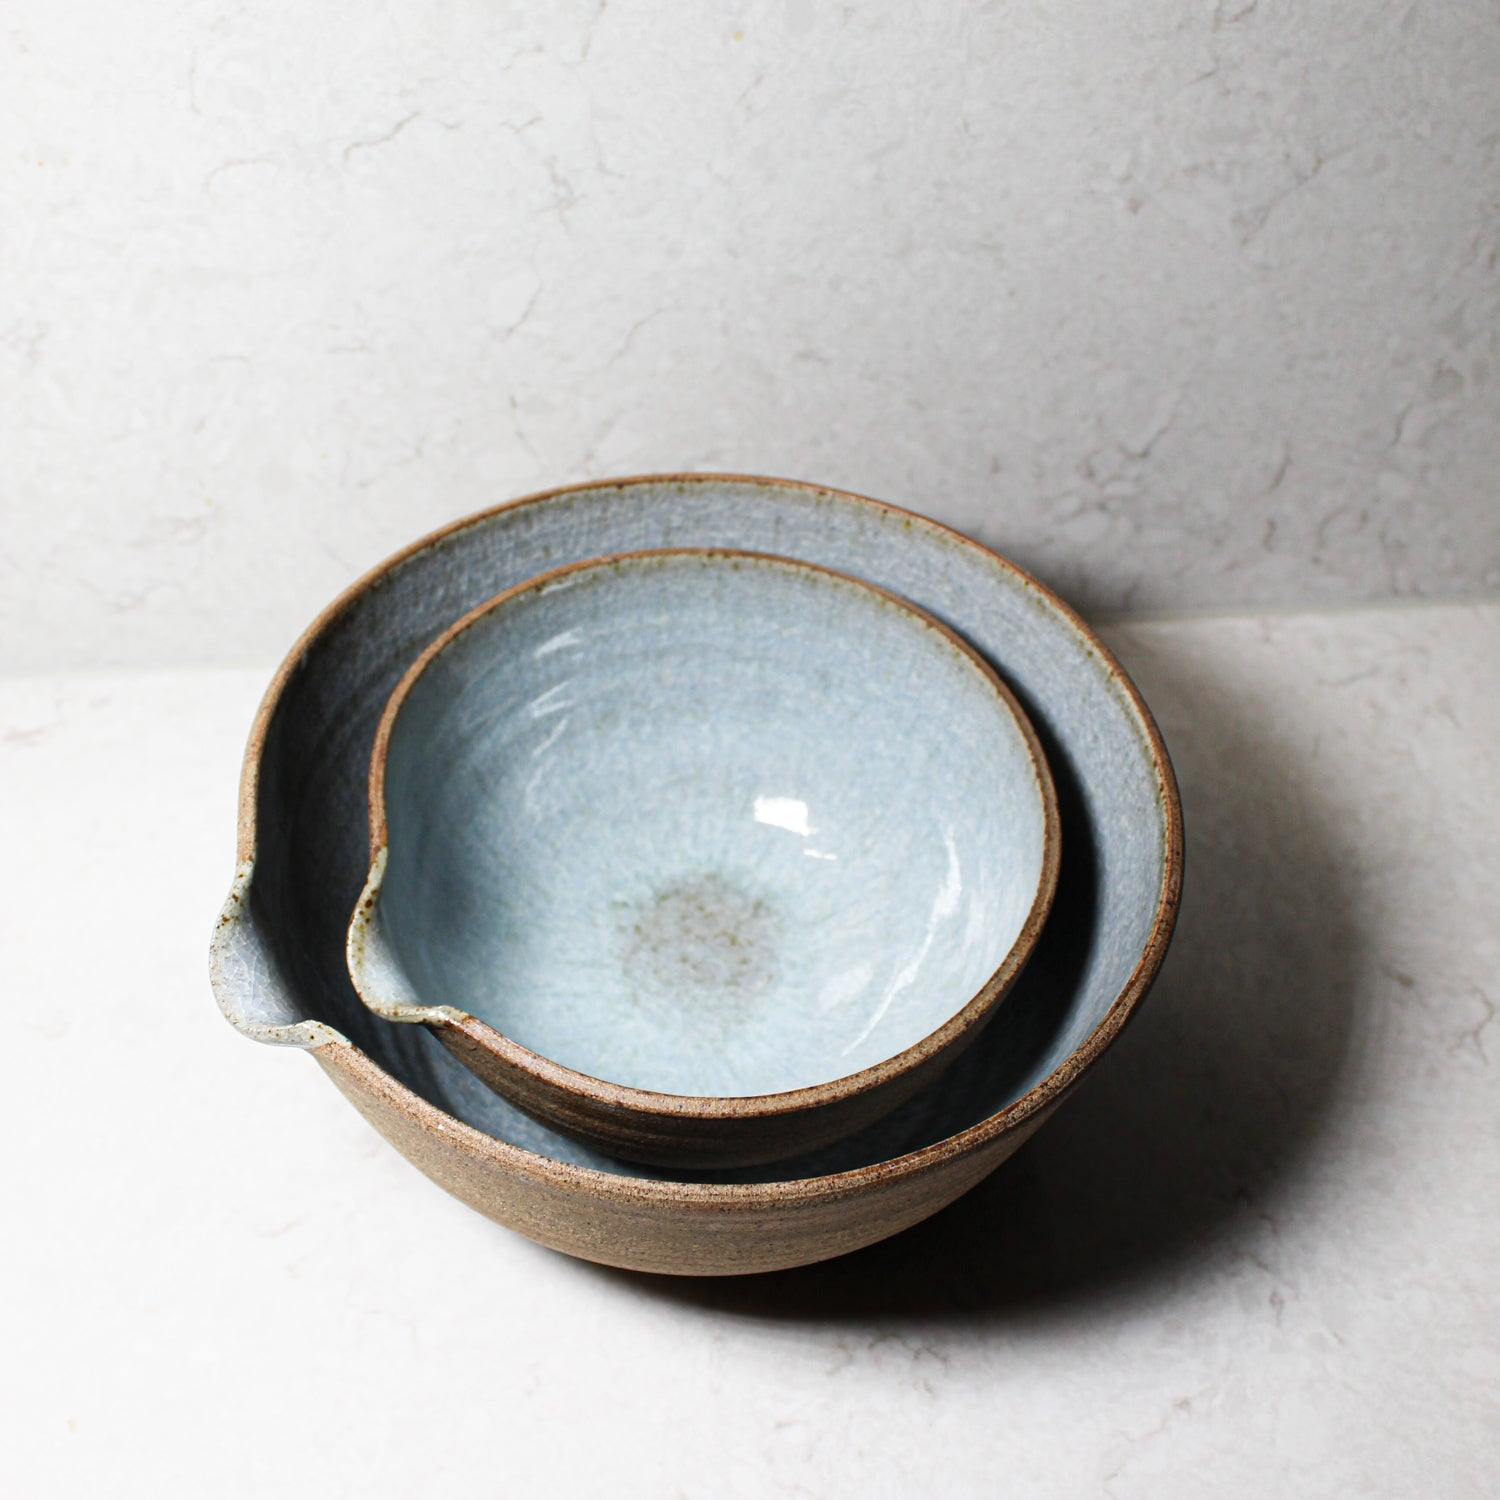 Two pottery pouring bowls stacked one inside the other